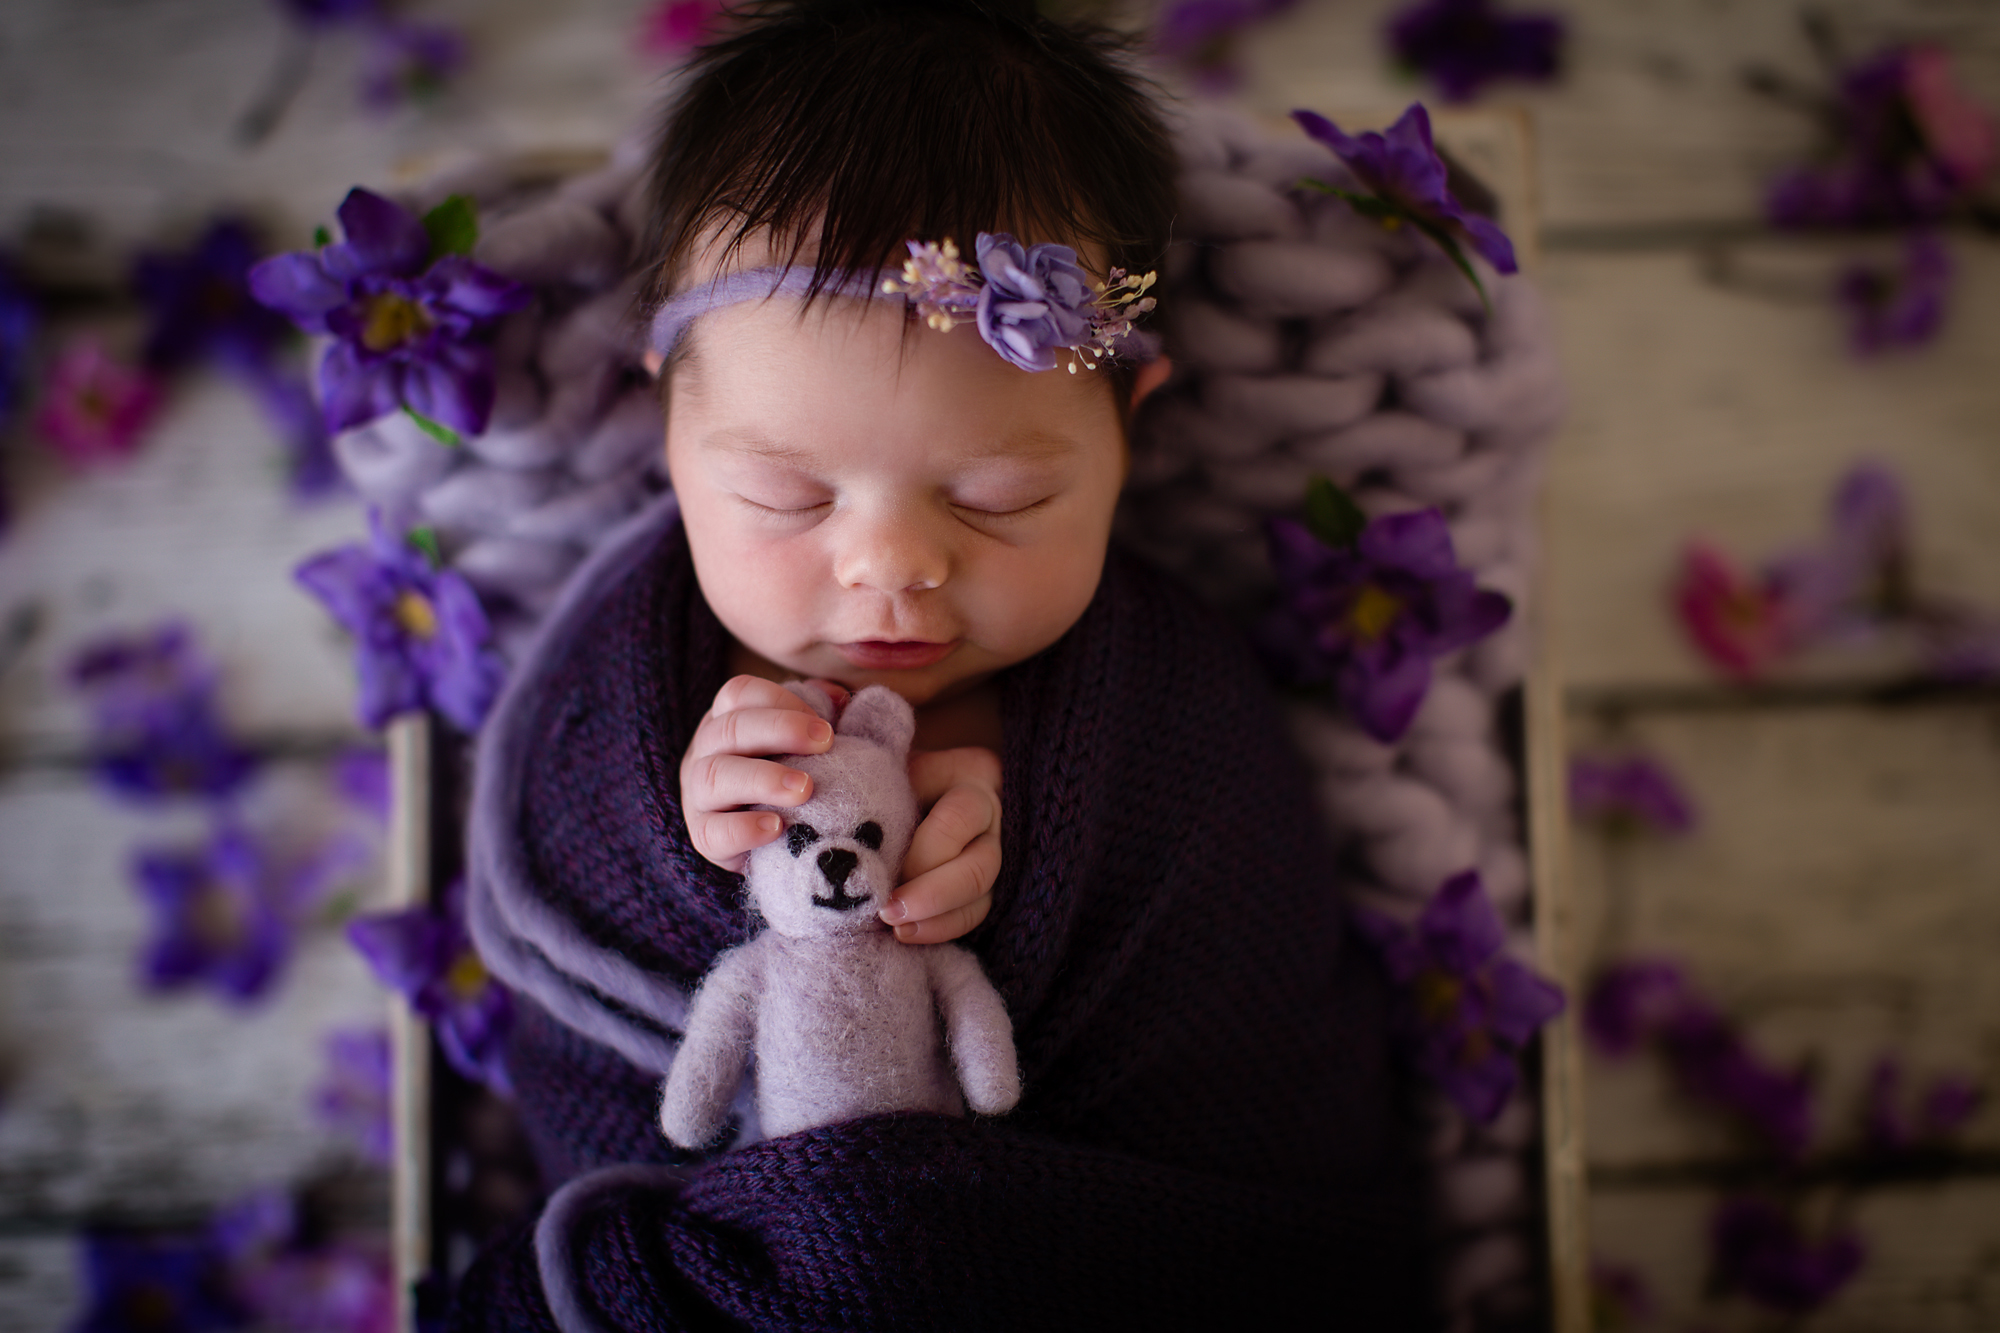 Newborn baby girl photoshoot idea.  Baby girl is smiling in her sleep and is holding a little purple teddy bear. Posed in a crate with purple flowers around her.